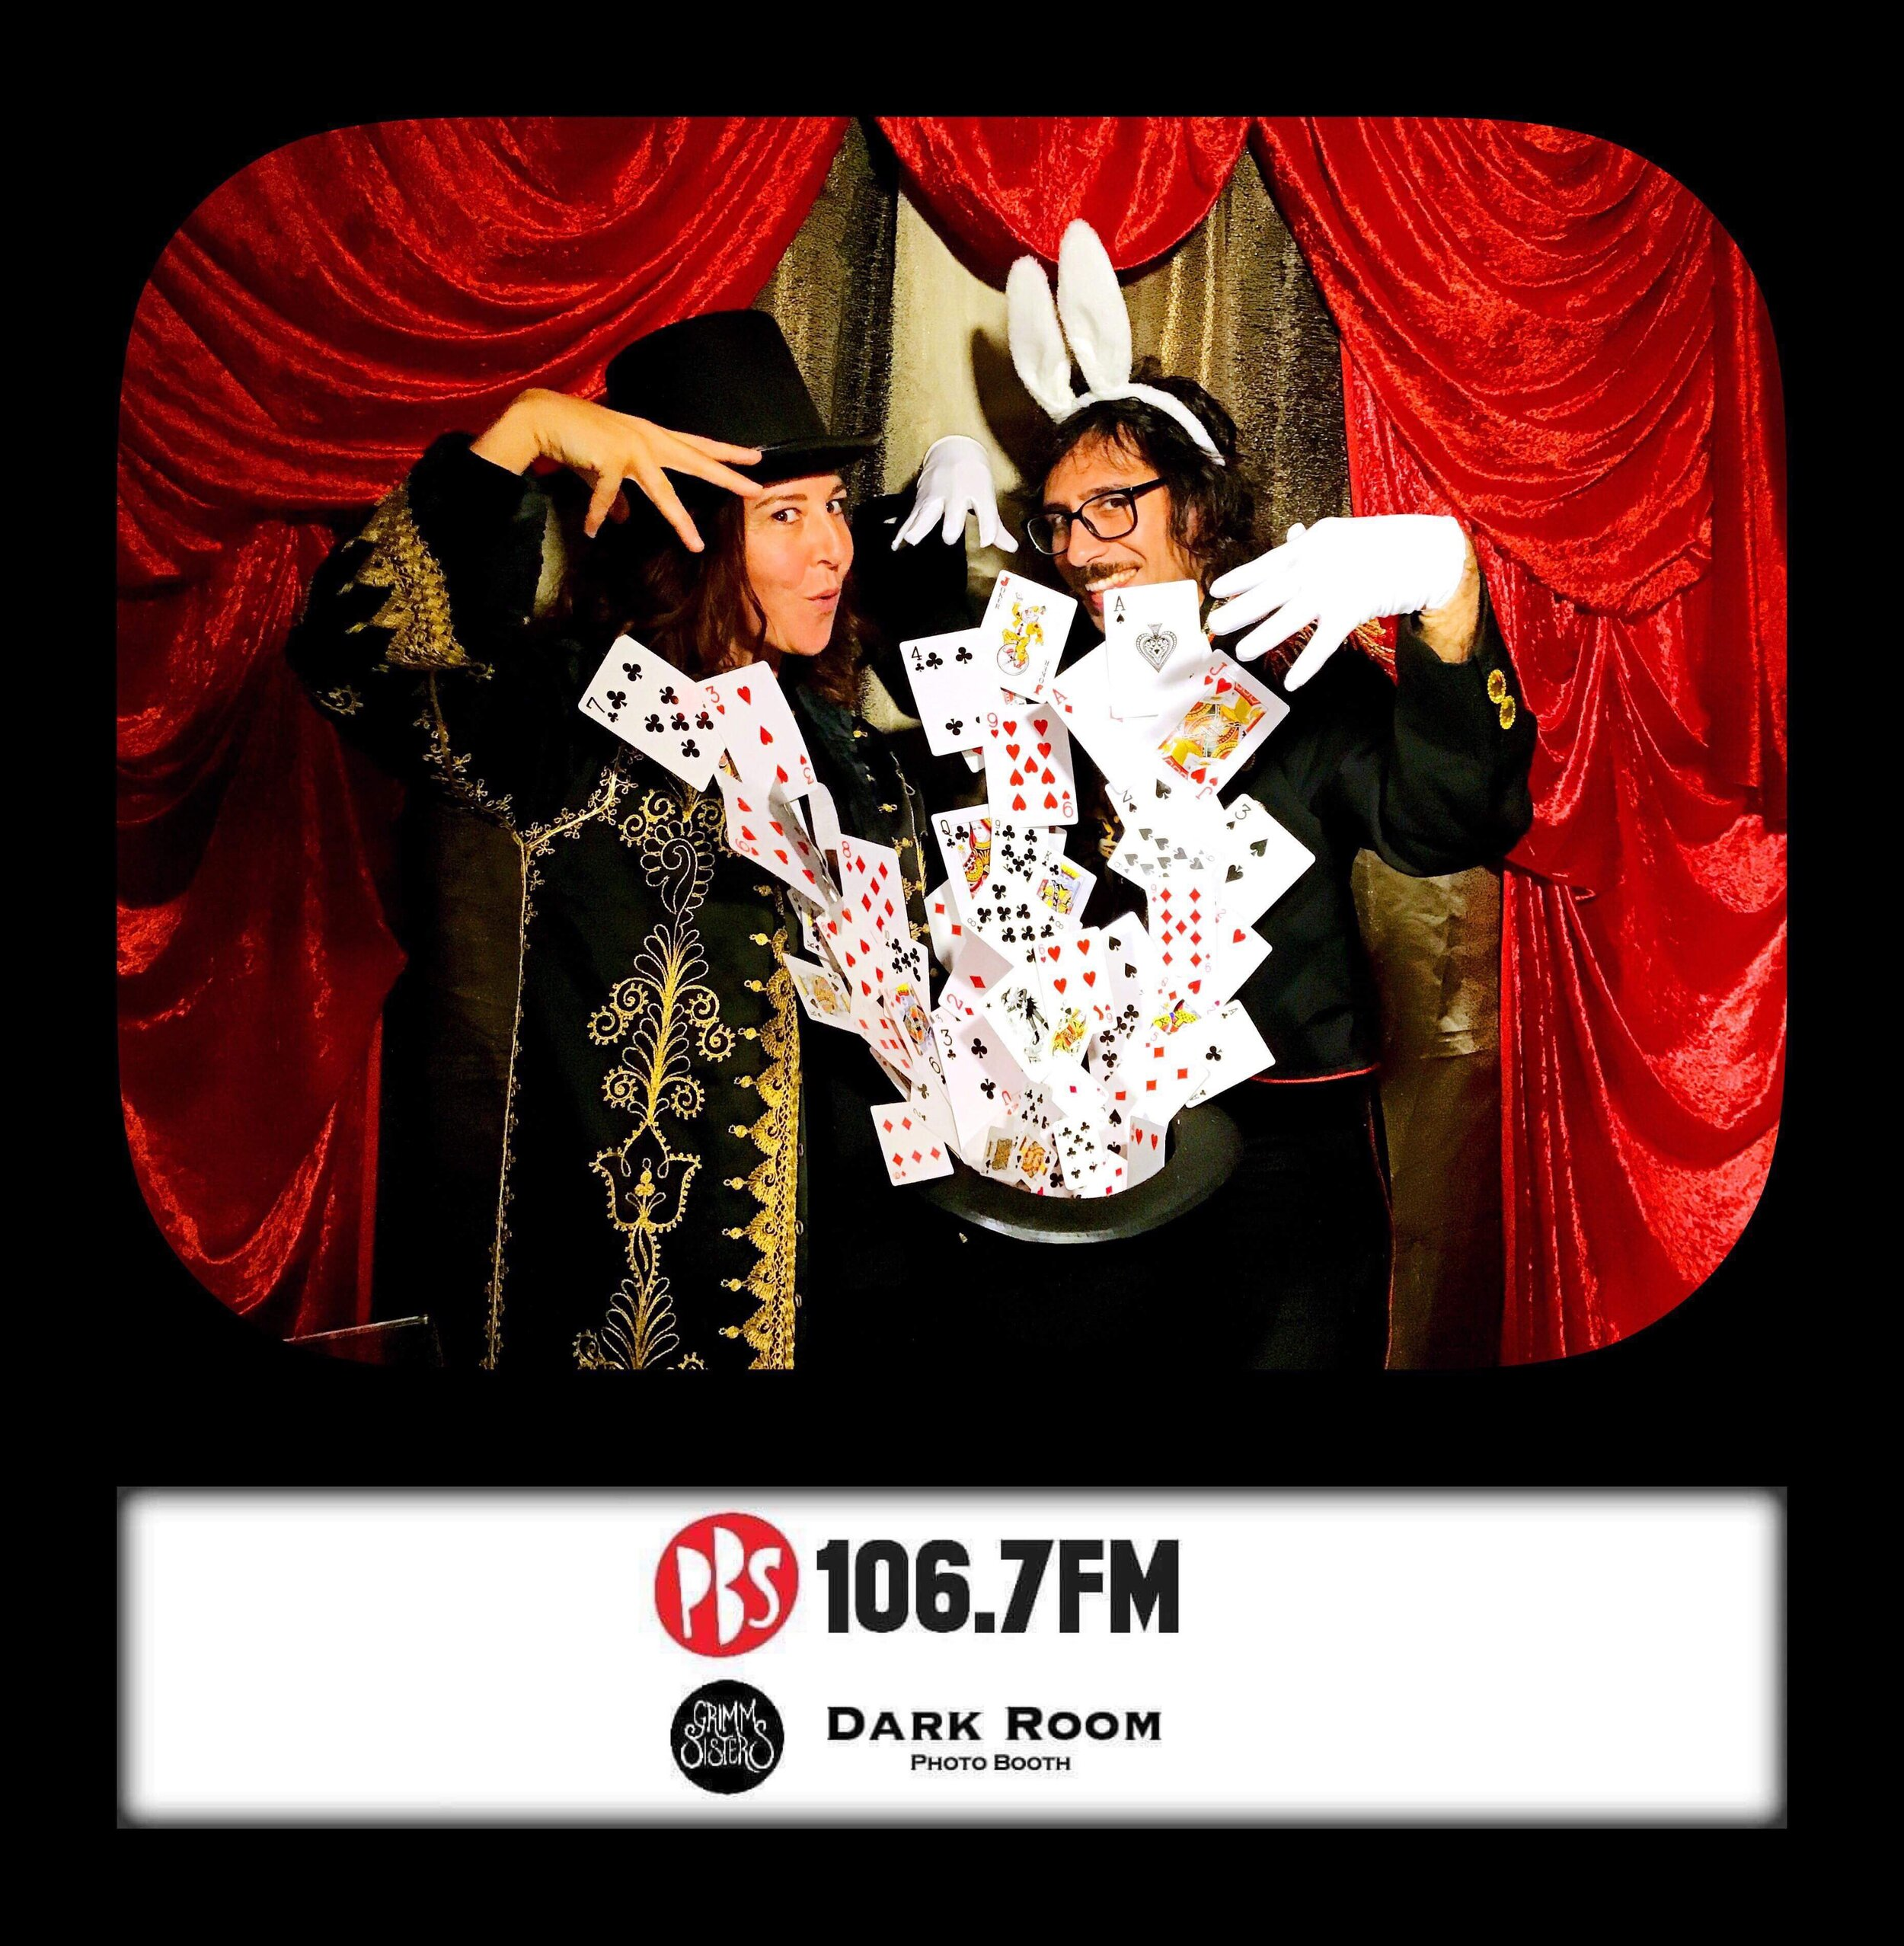 PBSFM Radio Festival Launch - Work Your Magic  Event styling for the week of PBSFM's annual radiothon and a custom built parlour magic themed Dark Room photo booth. Featuring props such as exploding hat of tumbling cards, embellished show jackets and handmade life-sized sawed in half magic trick.